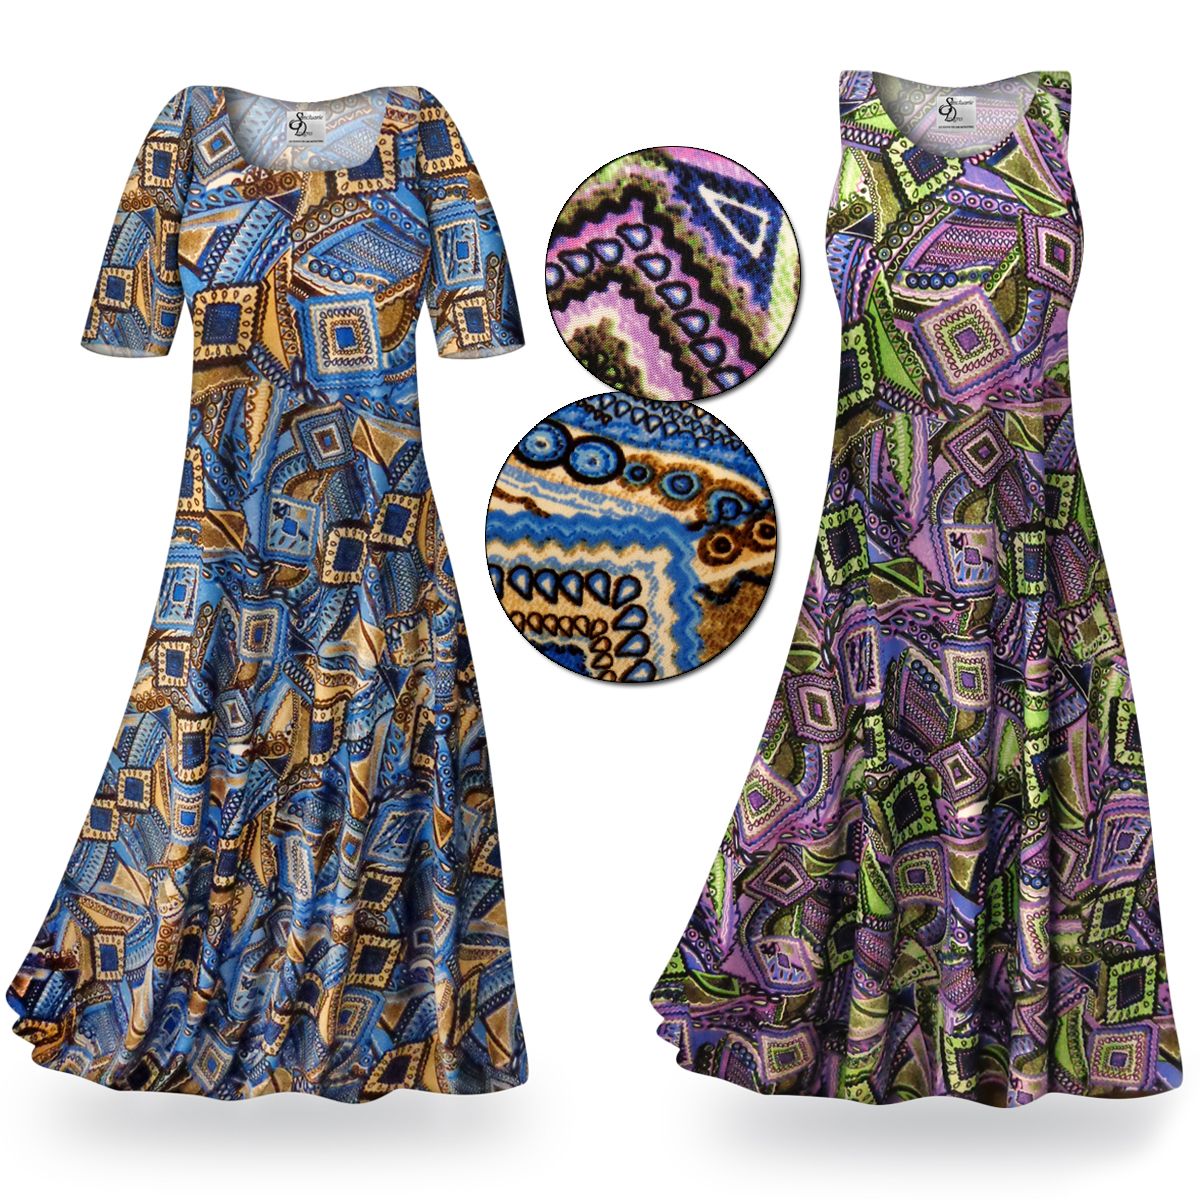 Clearance nifty squares slinky print plus size for 3x shirts on sale